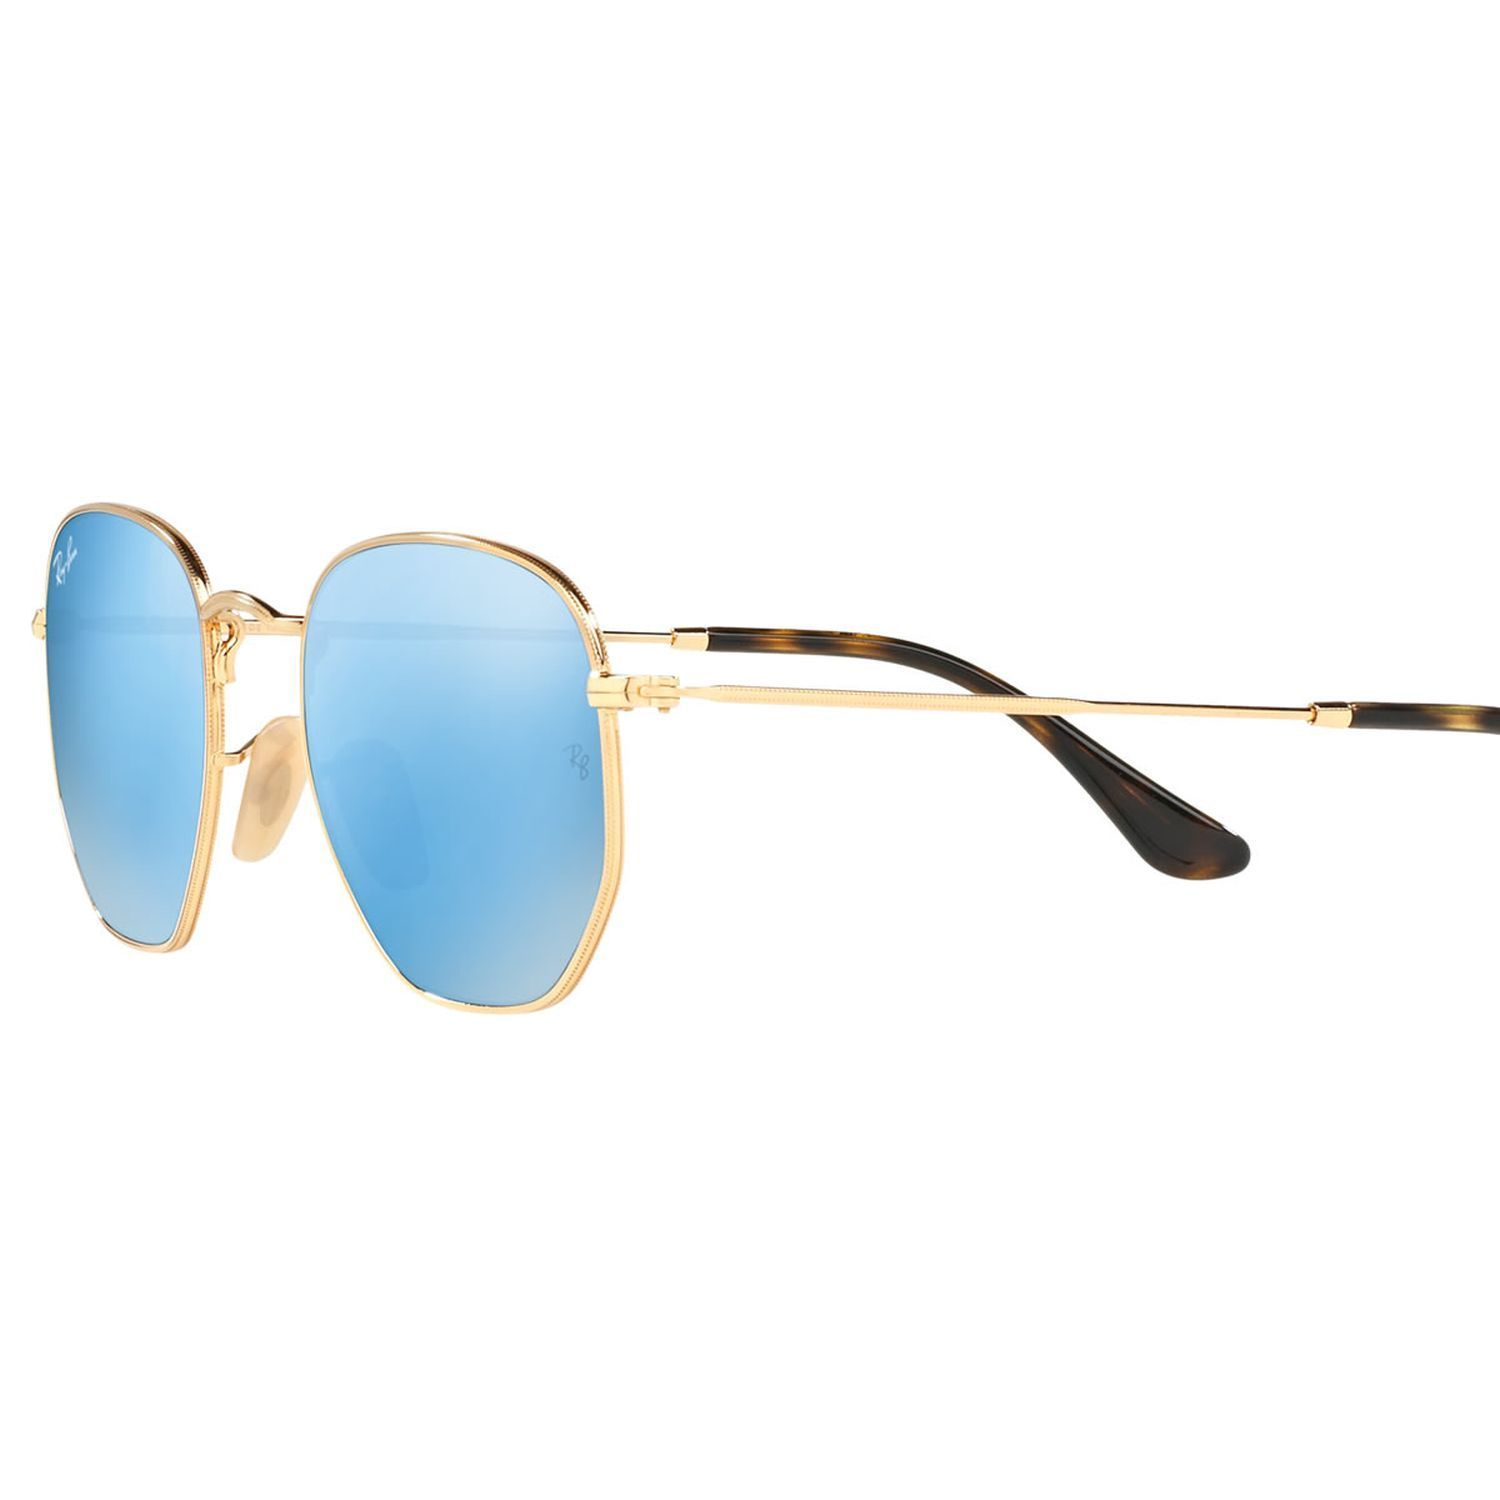 8e24f9ce72 Ray-Ban RB3548N-001-90 Hexagonal Sunglasses Gold Frame Blue Mirror Lens